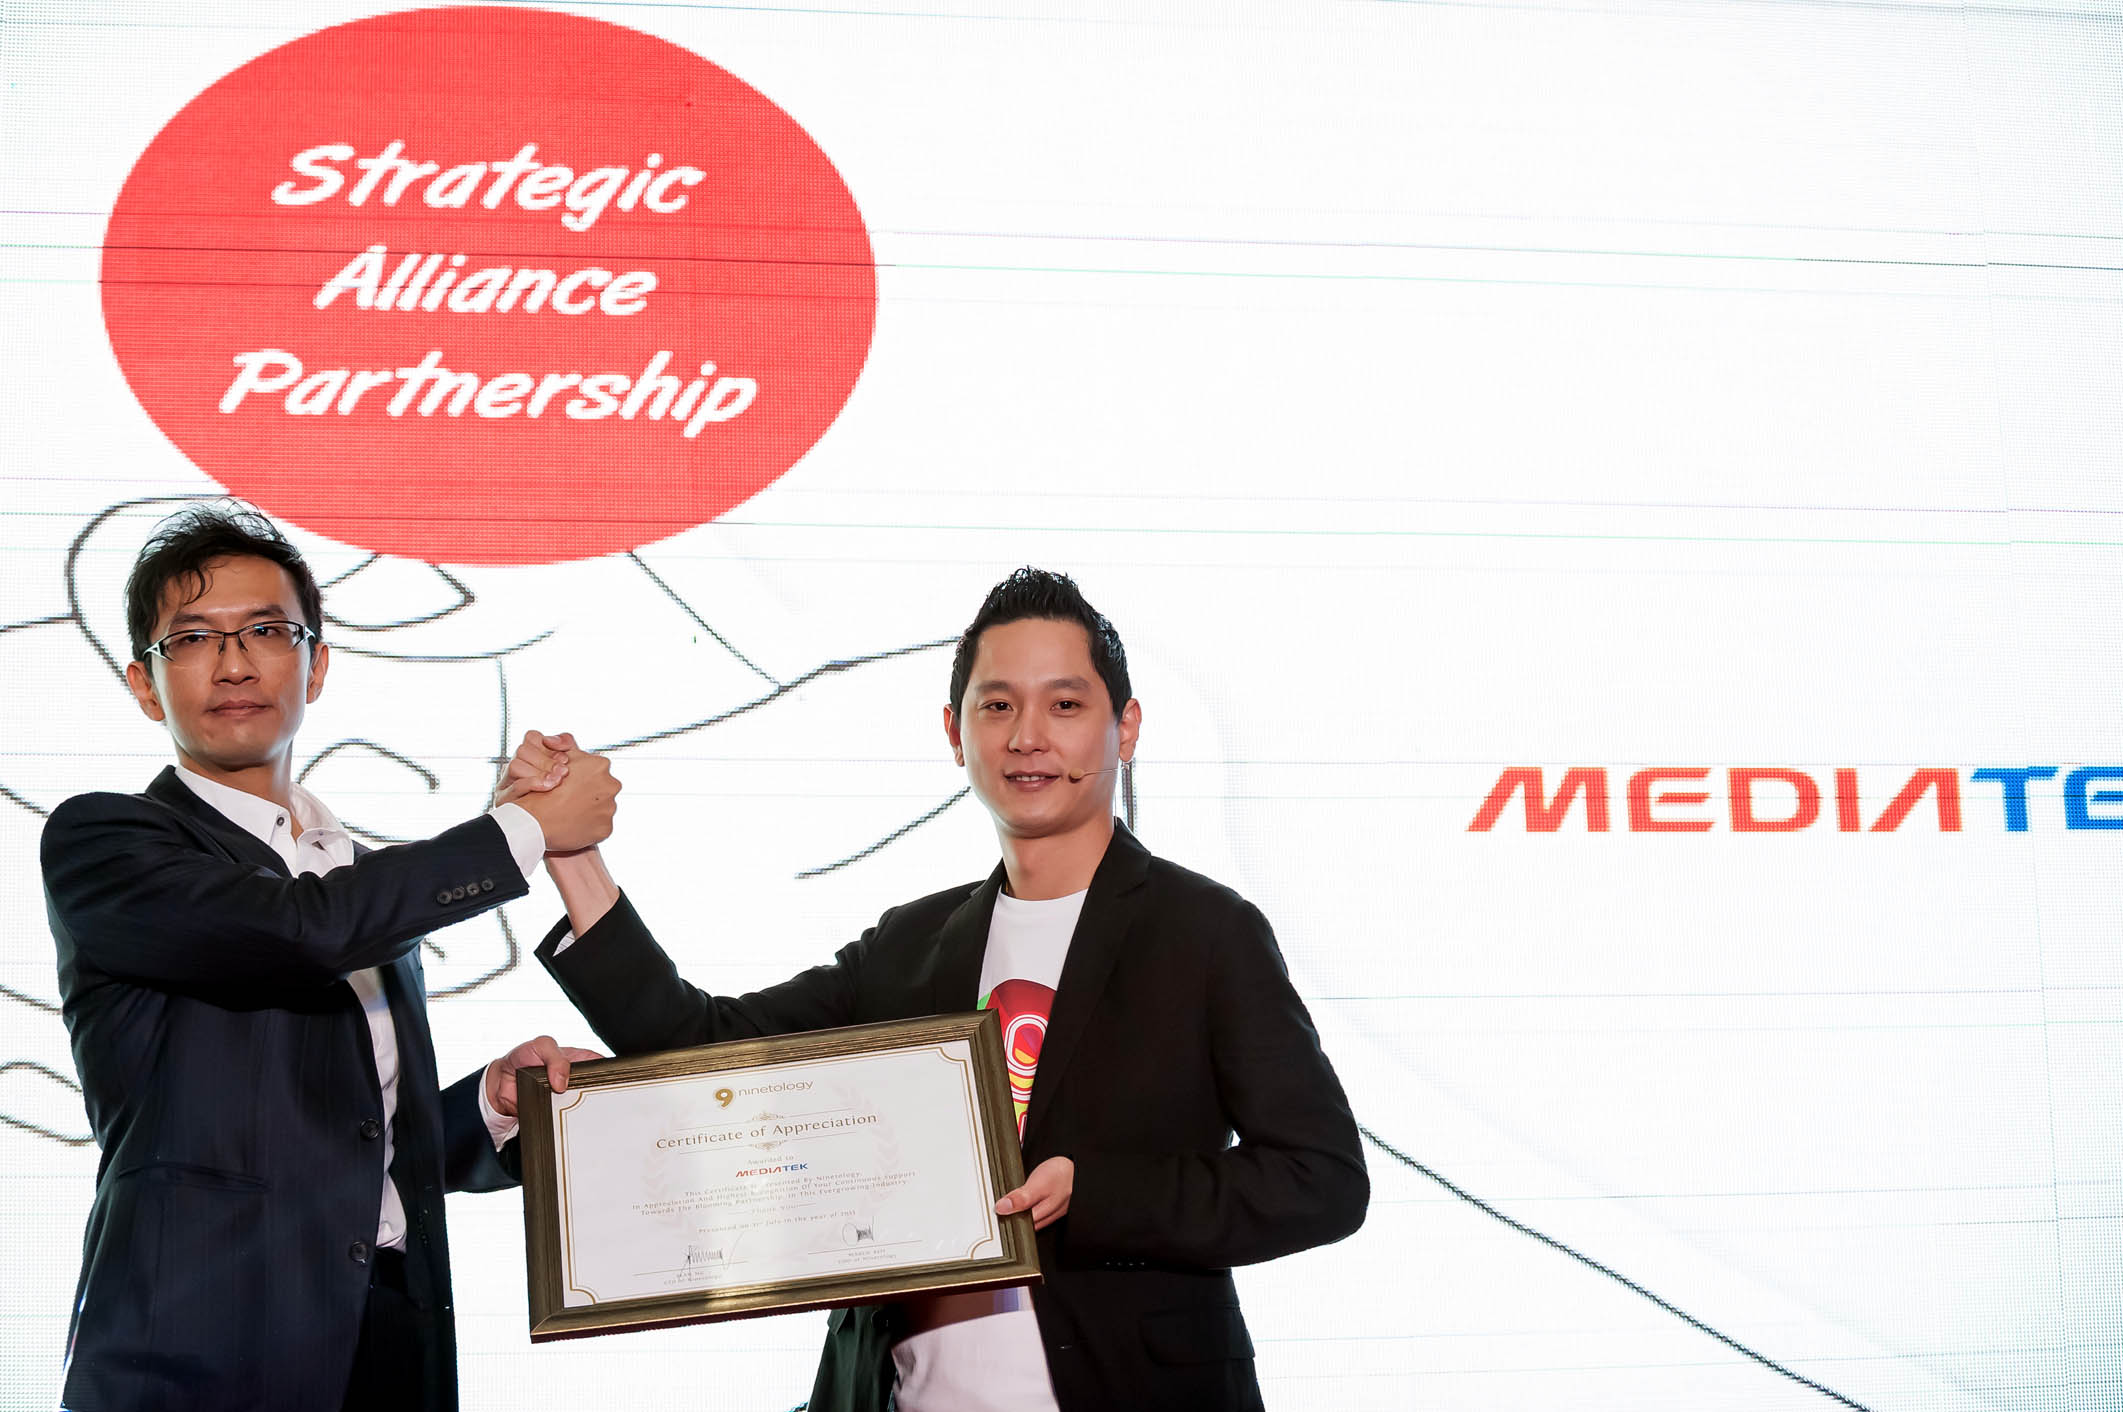 NINETOLOGY MEDIATEK PARTNERSHIP